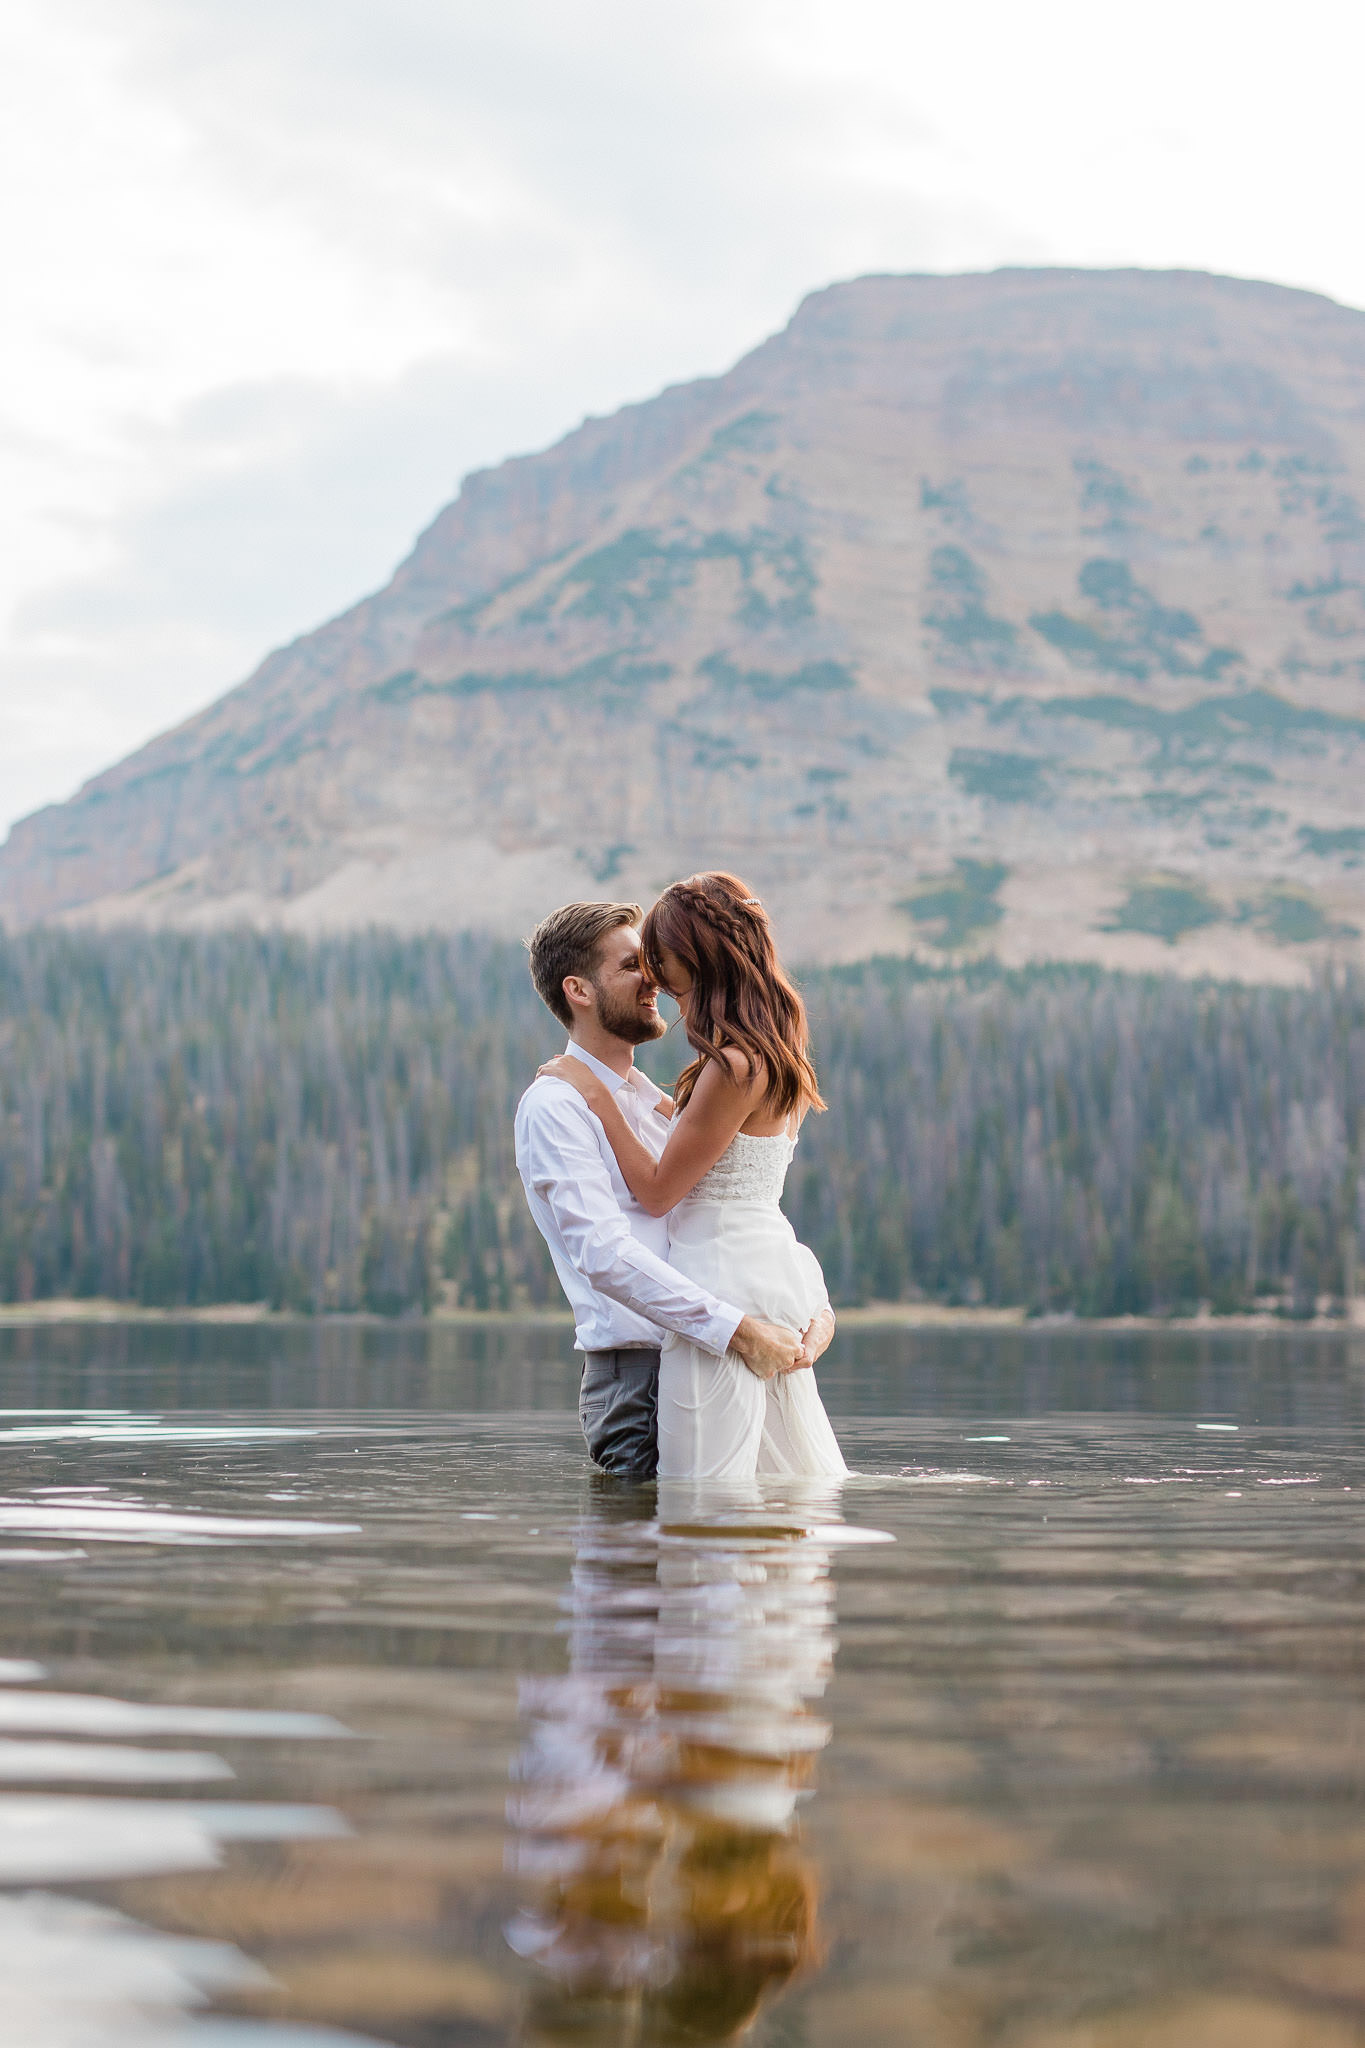 Wedding couple stand in the middle of a lake with a mountain in the background after their elopement ceremony